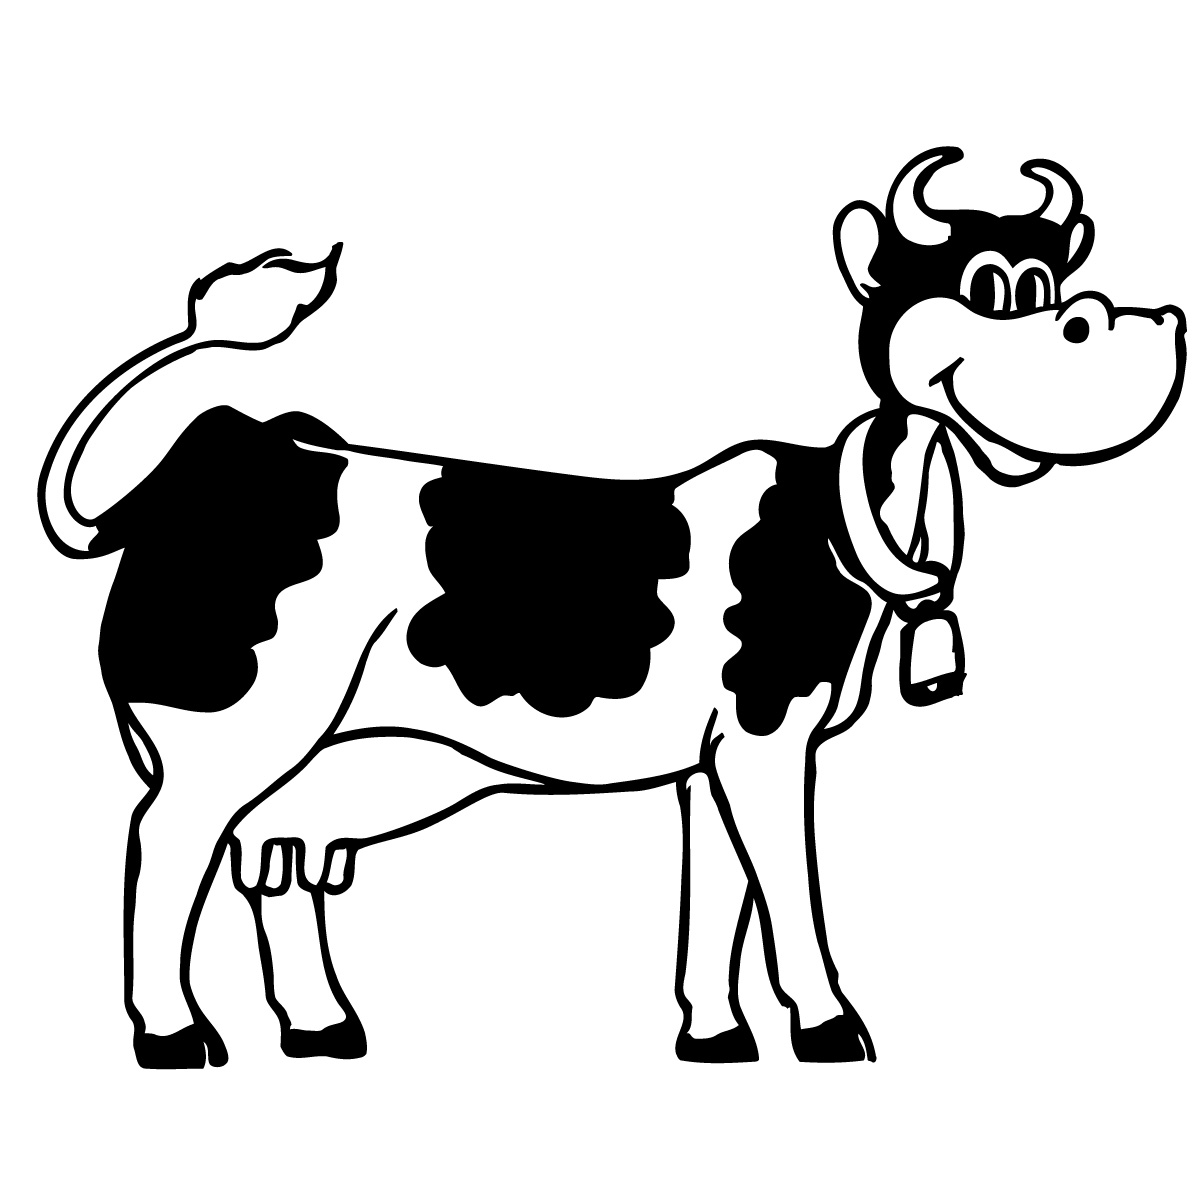 1200x1200 Cartoon Cow Pictures, Cartoon Cow, Cartoon Cows Tedlillyfanclub